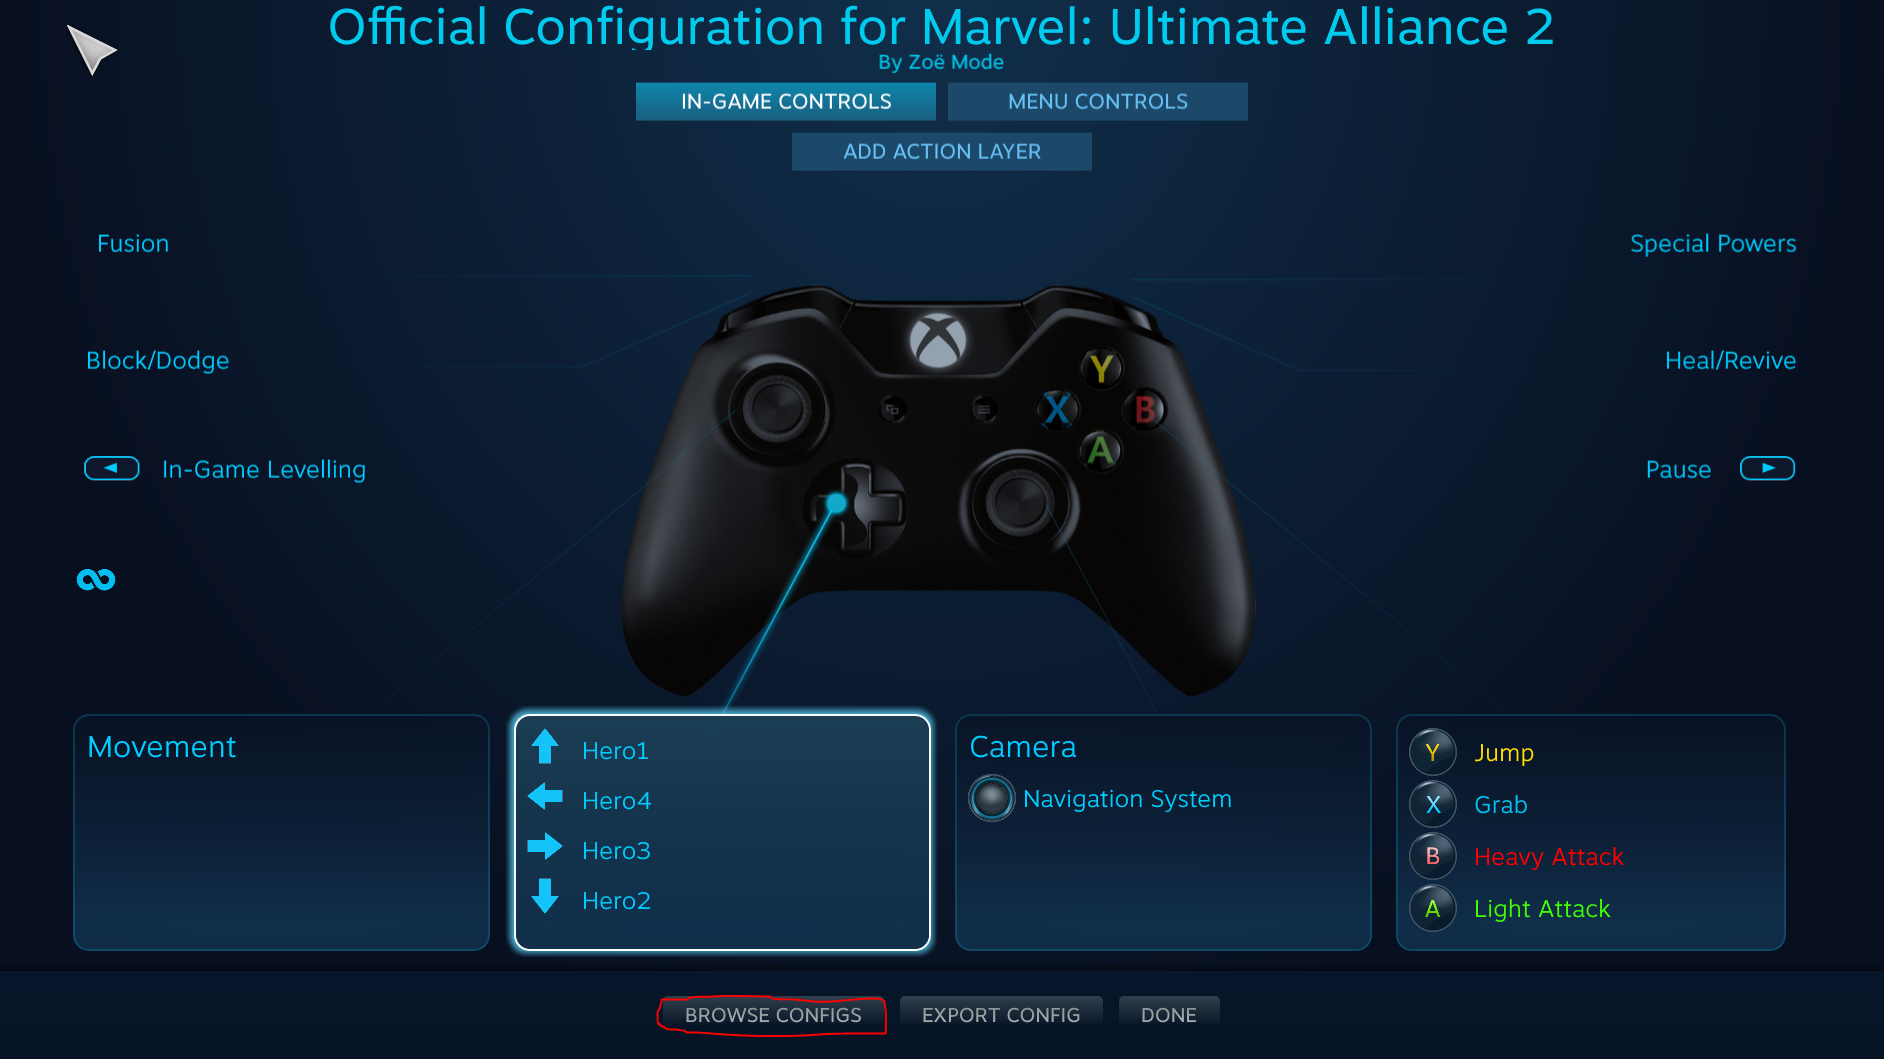 Marvel: Ultimate Alliance 2 - How to Fix XBOX Controller Tutorial - Step 1 - Big Picture Configuration (Just in case) - 3559ED6